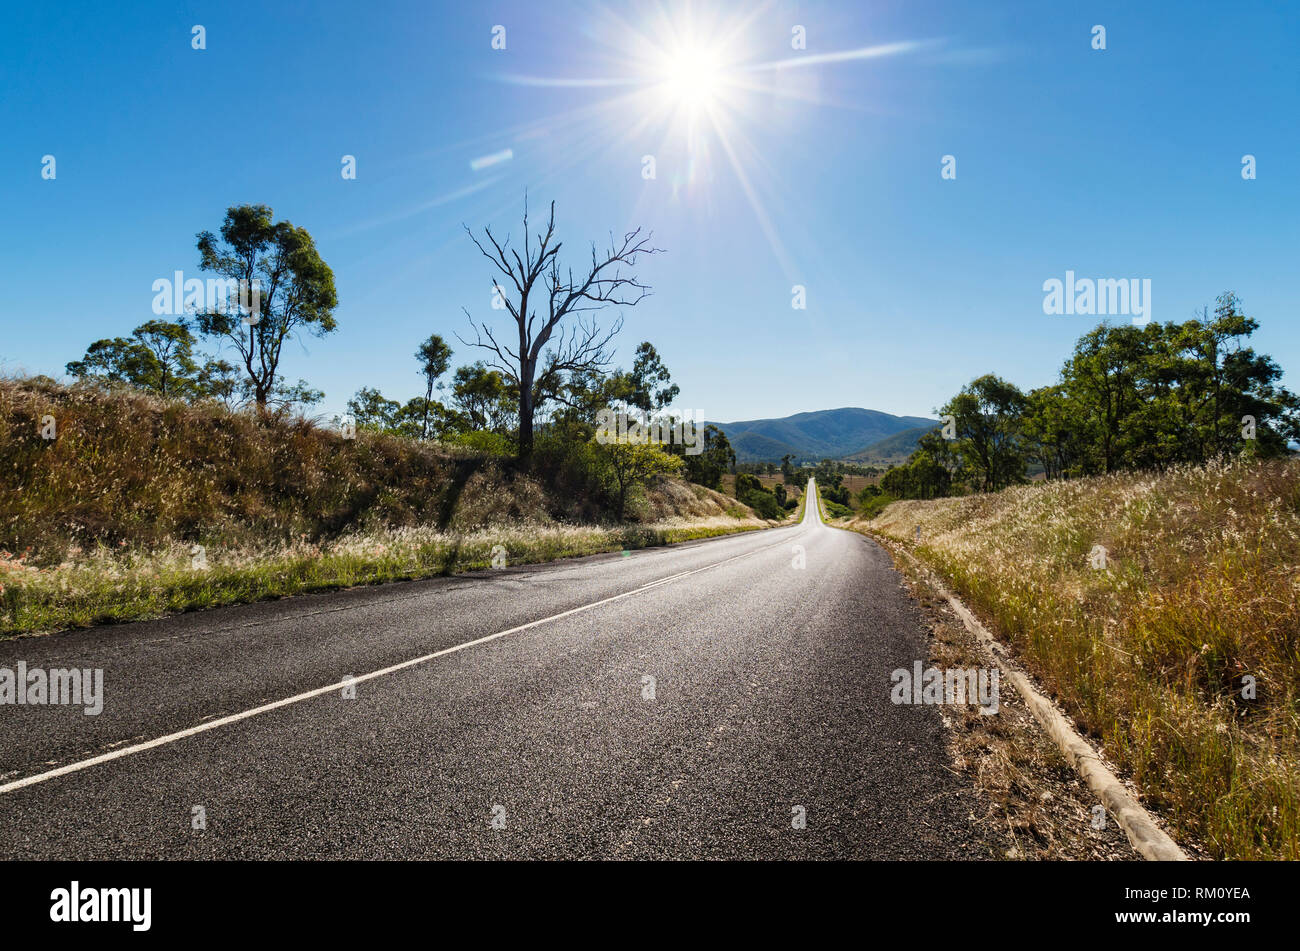 A view down an empty road outside Brisbane with a midday sun. Stock Photo